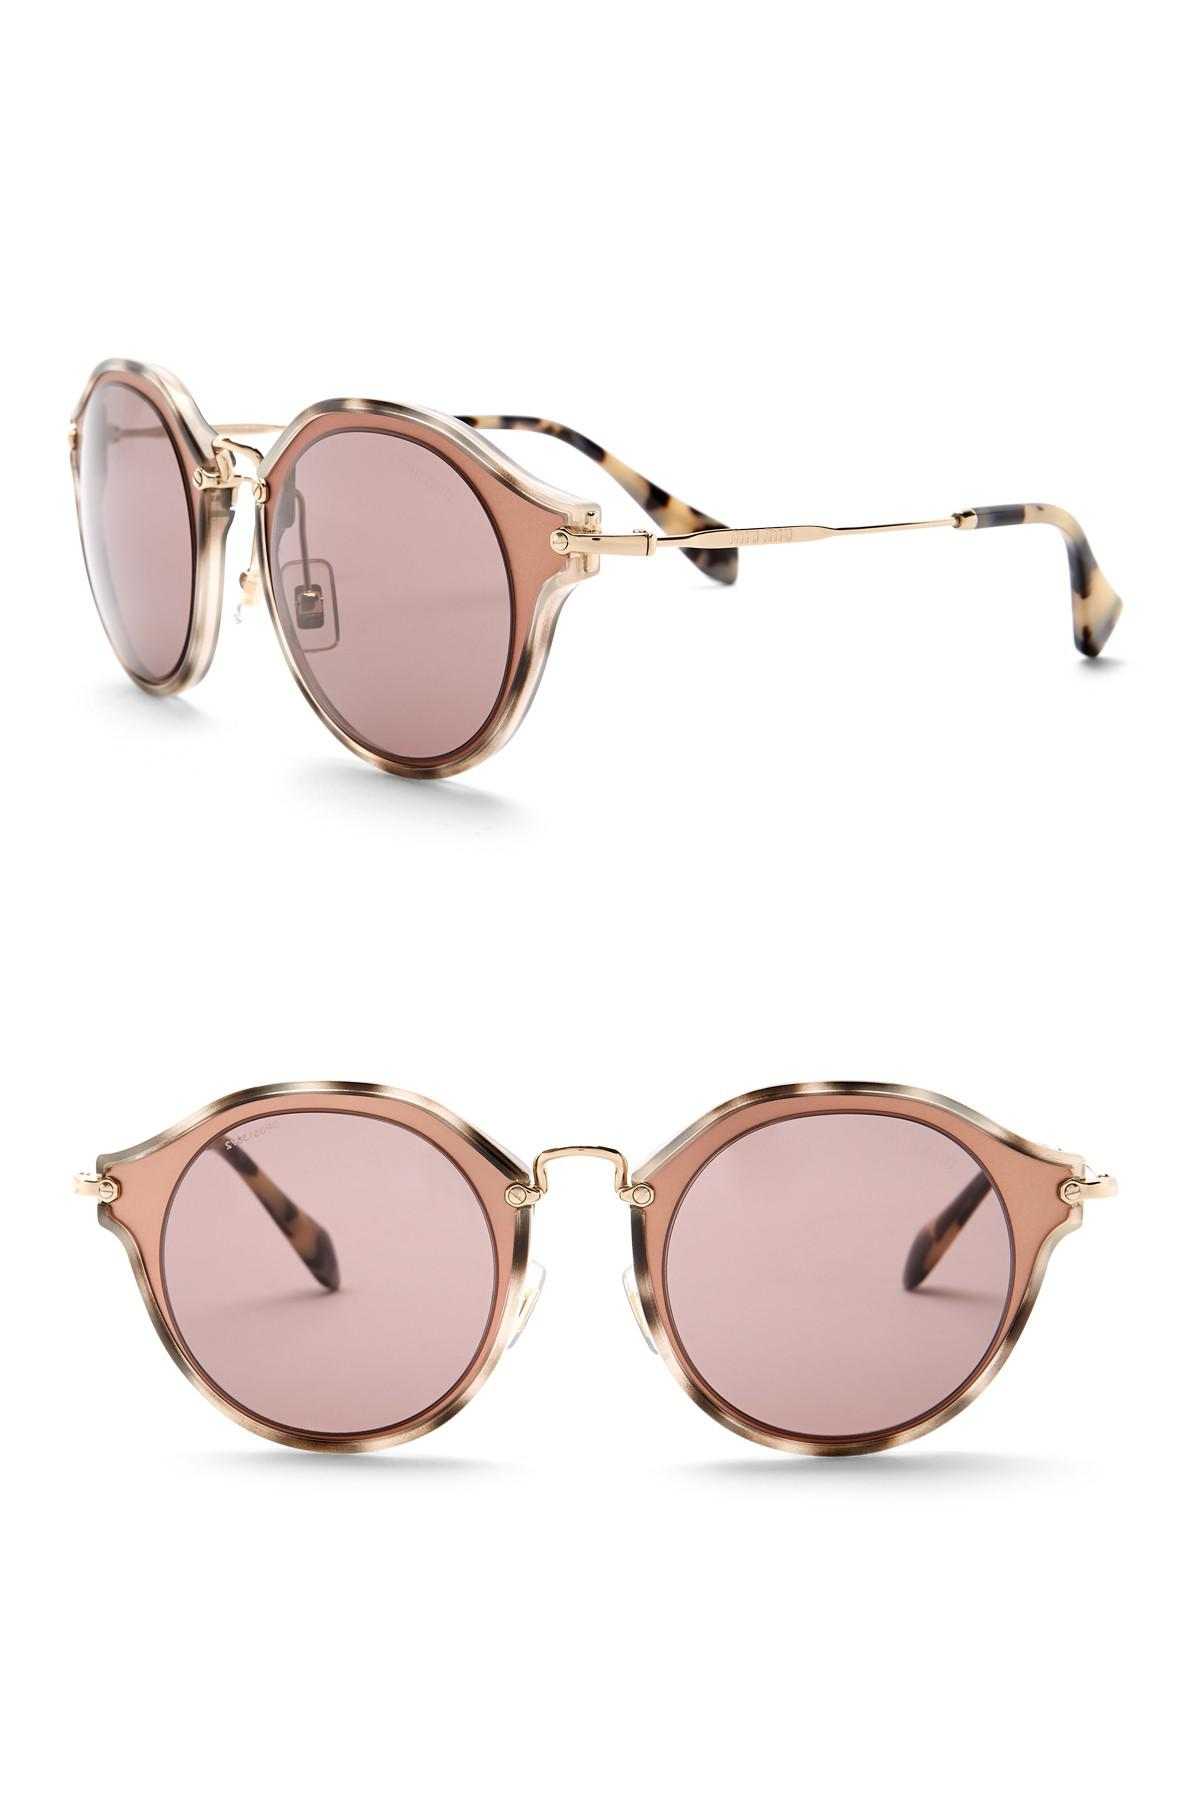 262c5112cec Gallery. Previously sold at  Nordstrom Rack · Women s Acetate Sunglasses ...